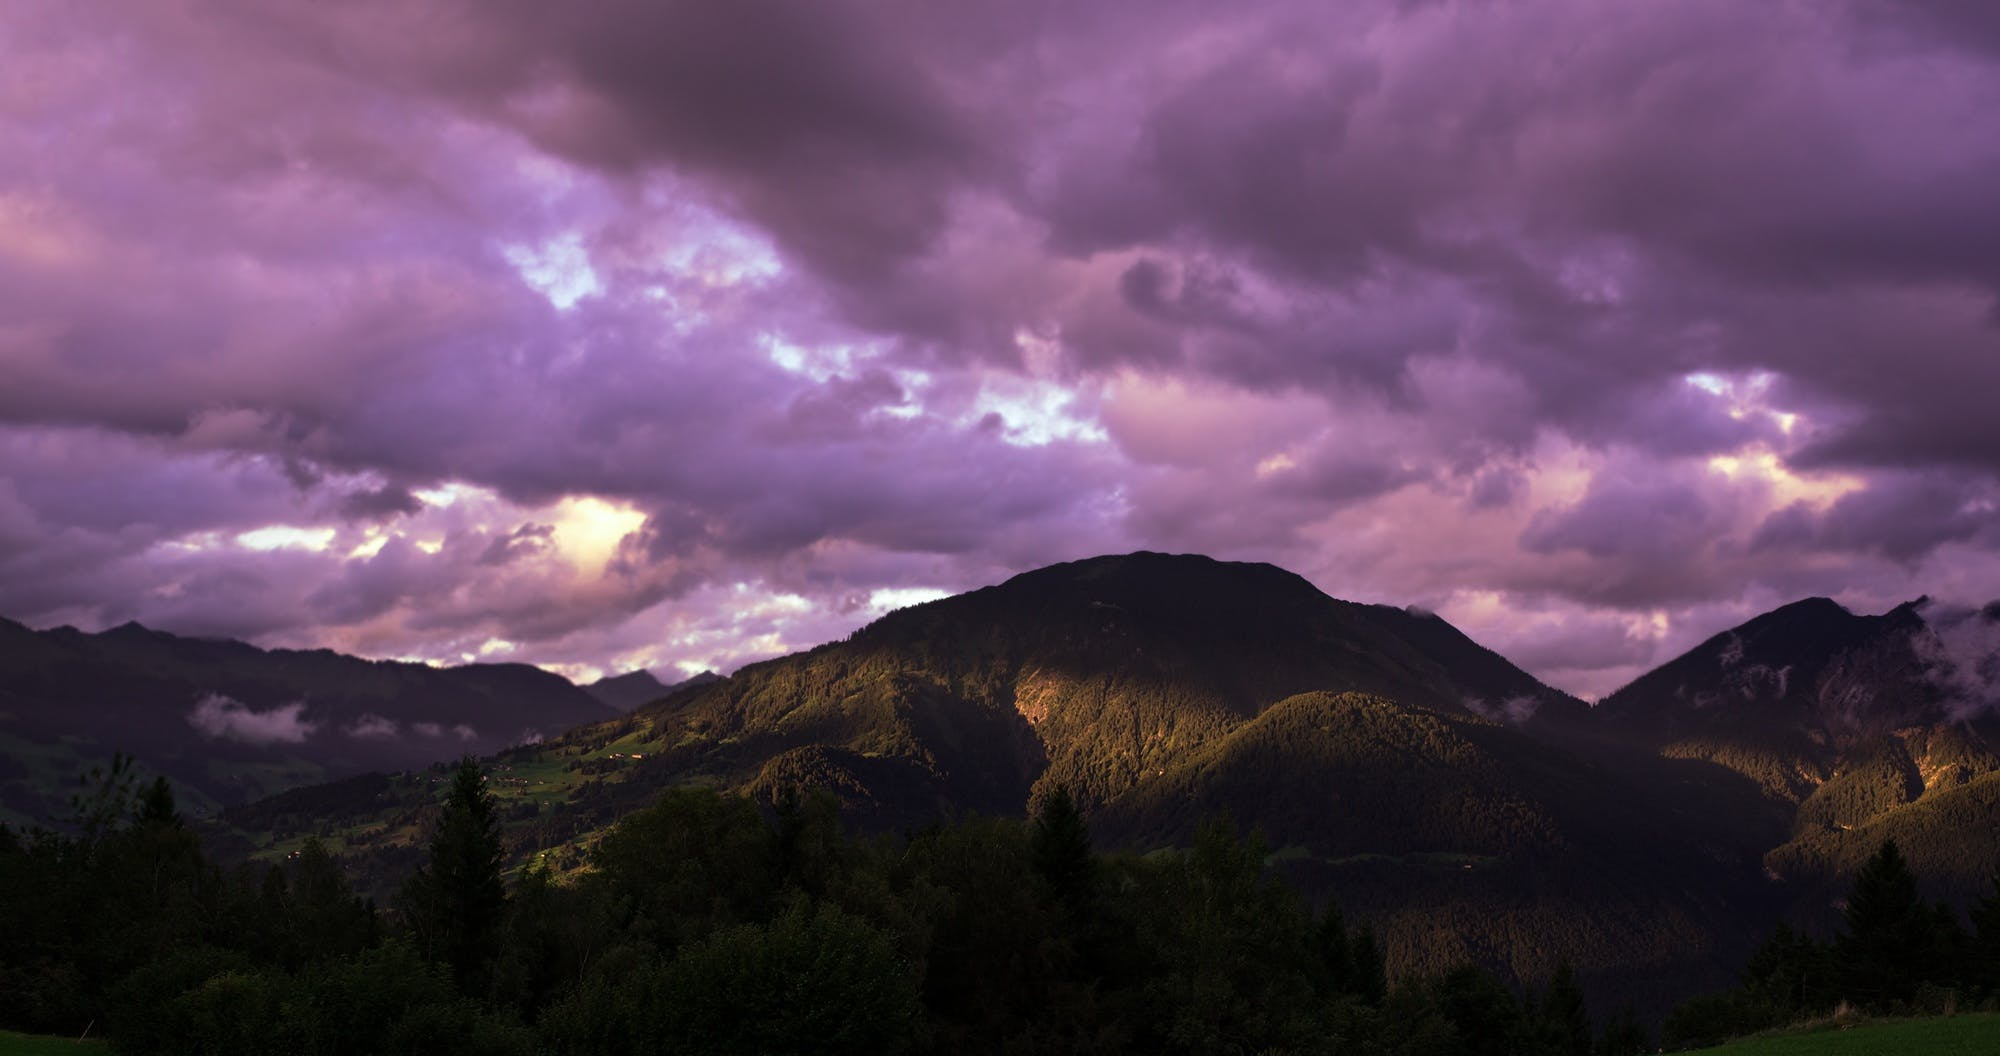 Brown Mountain Under Cloudy Sky during Sunset